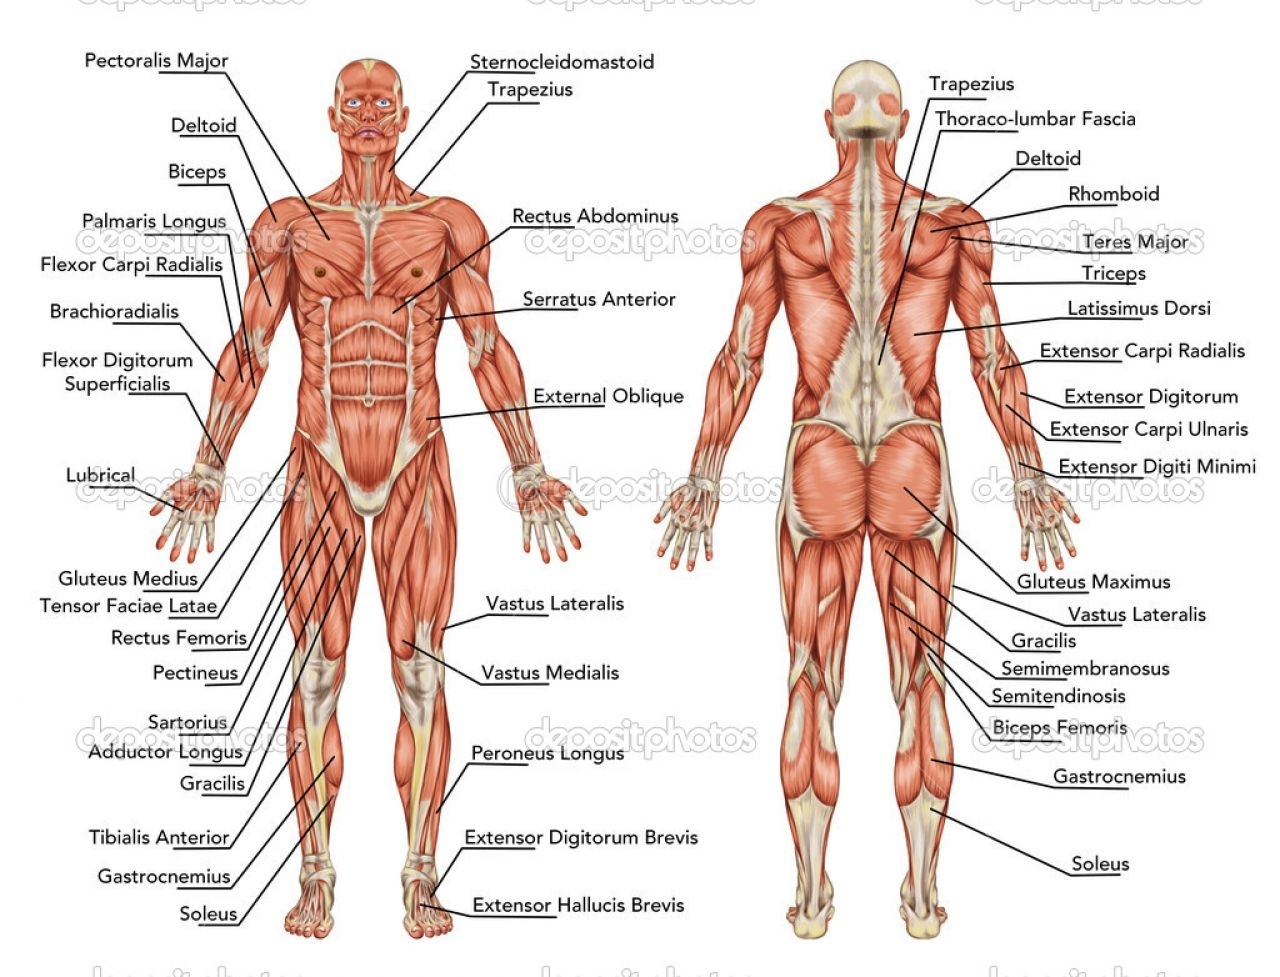 human muscular system blank diagram honeywell central heating timer wiring quizlet paintings search result at paintingvalley com 1280x977 sketch